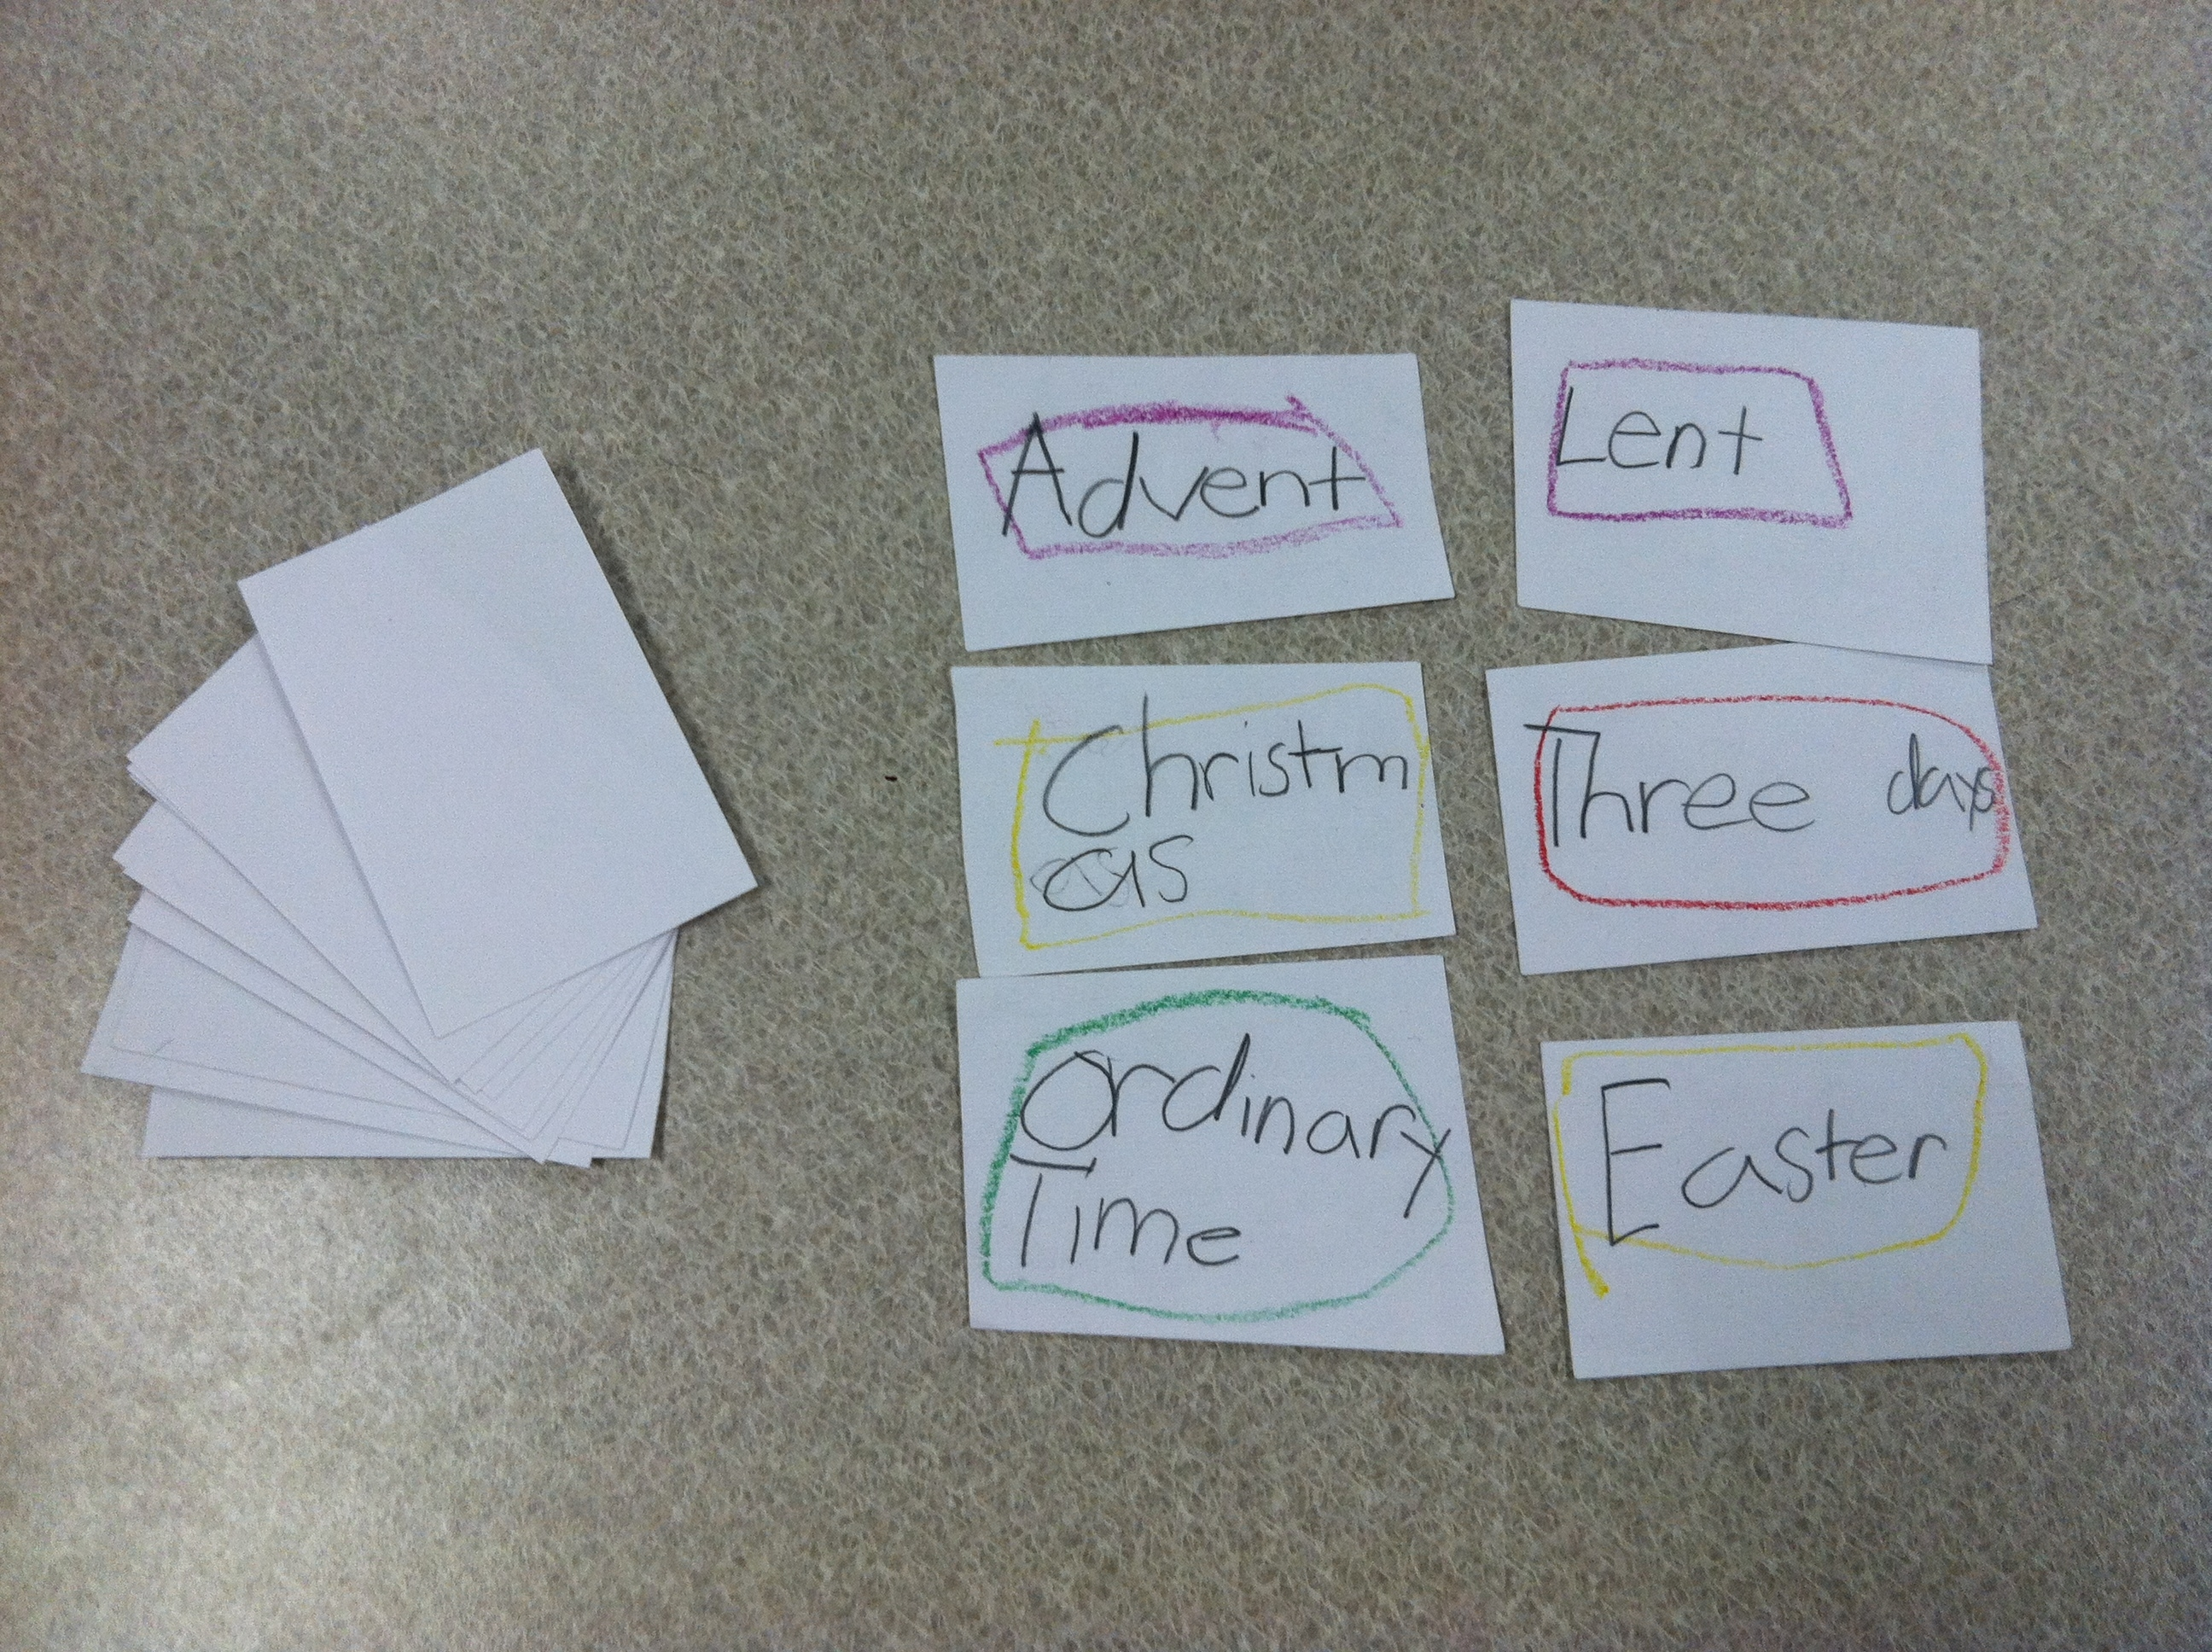 Liturgical Year Lesson Plan And Flashcard Activity | The Religion inside Teaching The Catholic Liturgical Calendar